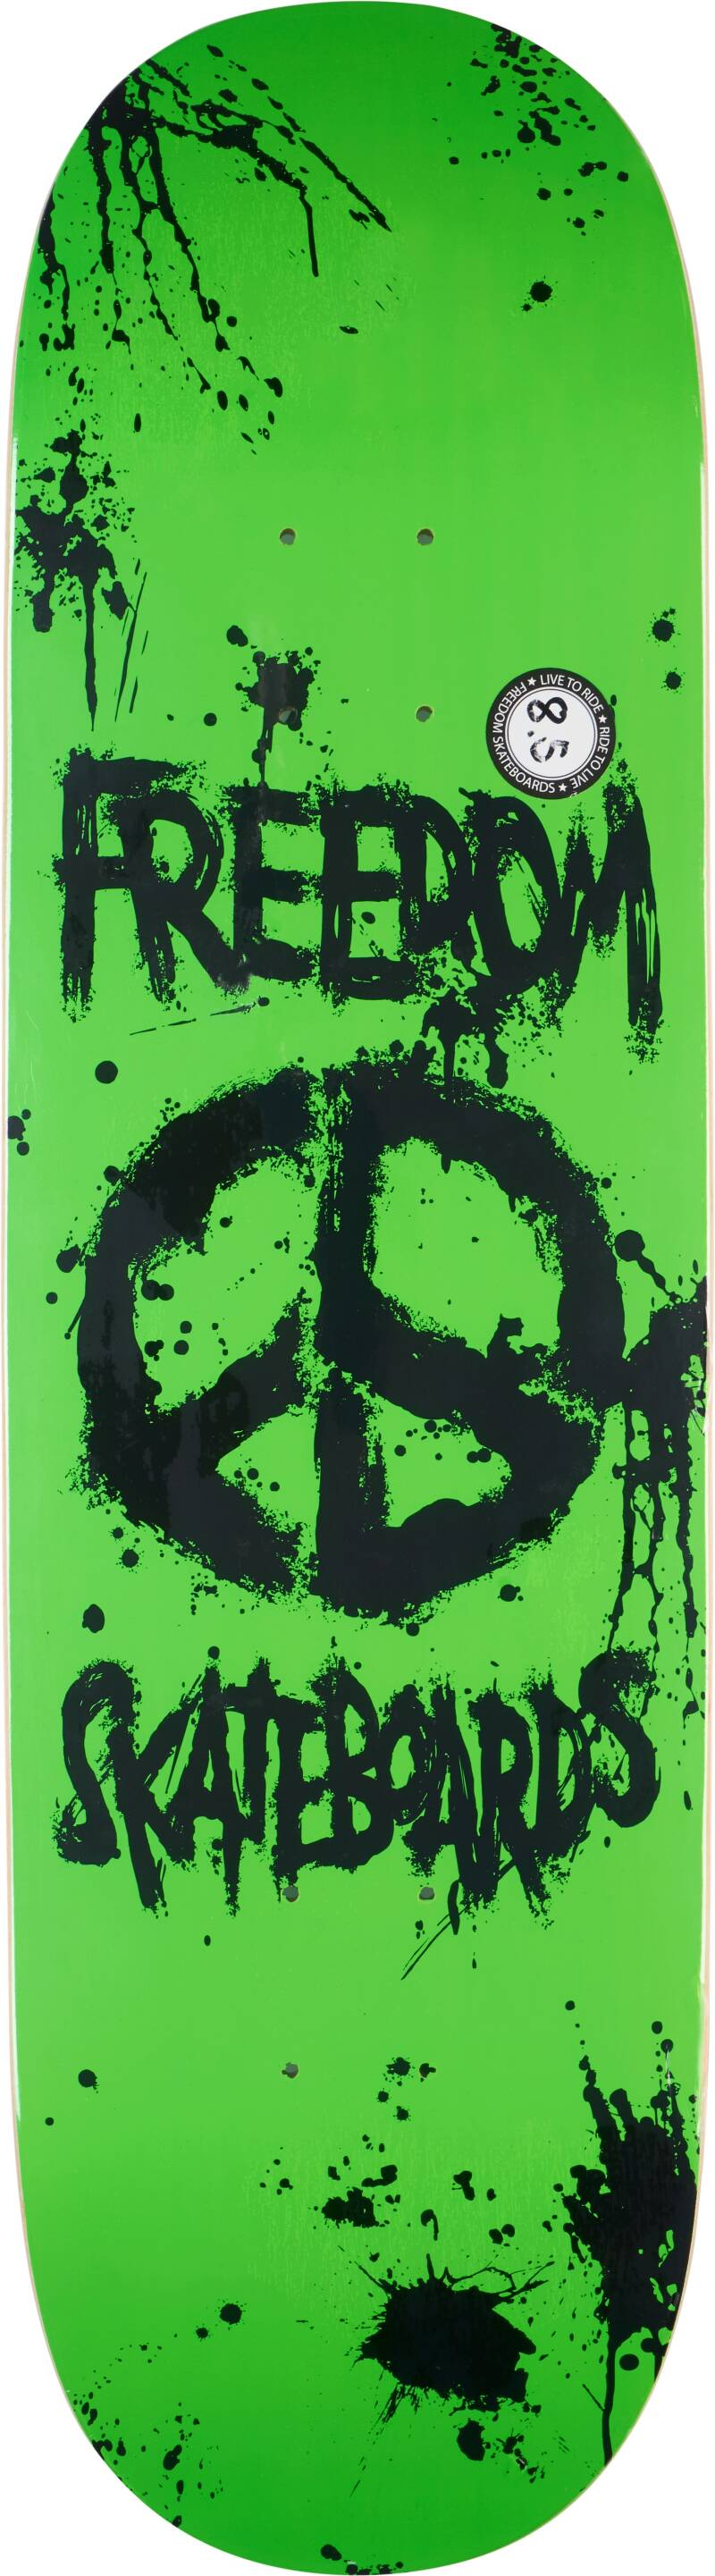 Freedom Peace Paint White Deck